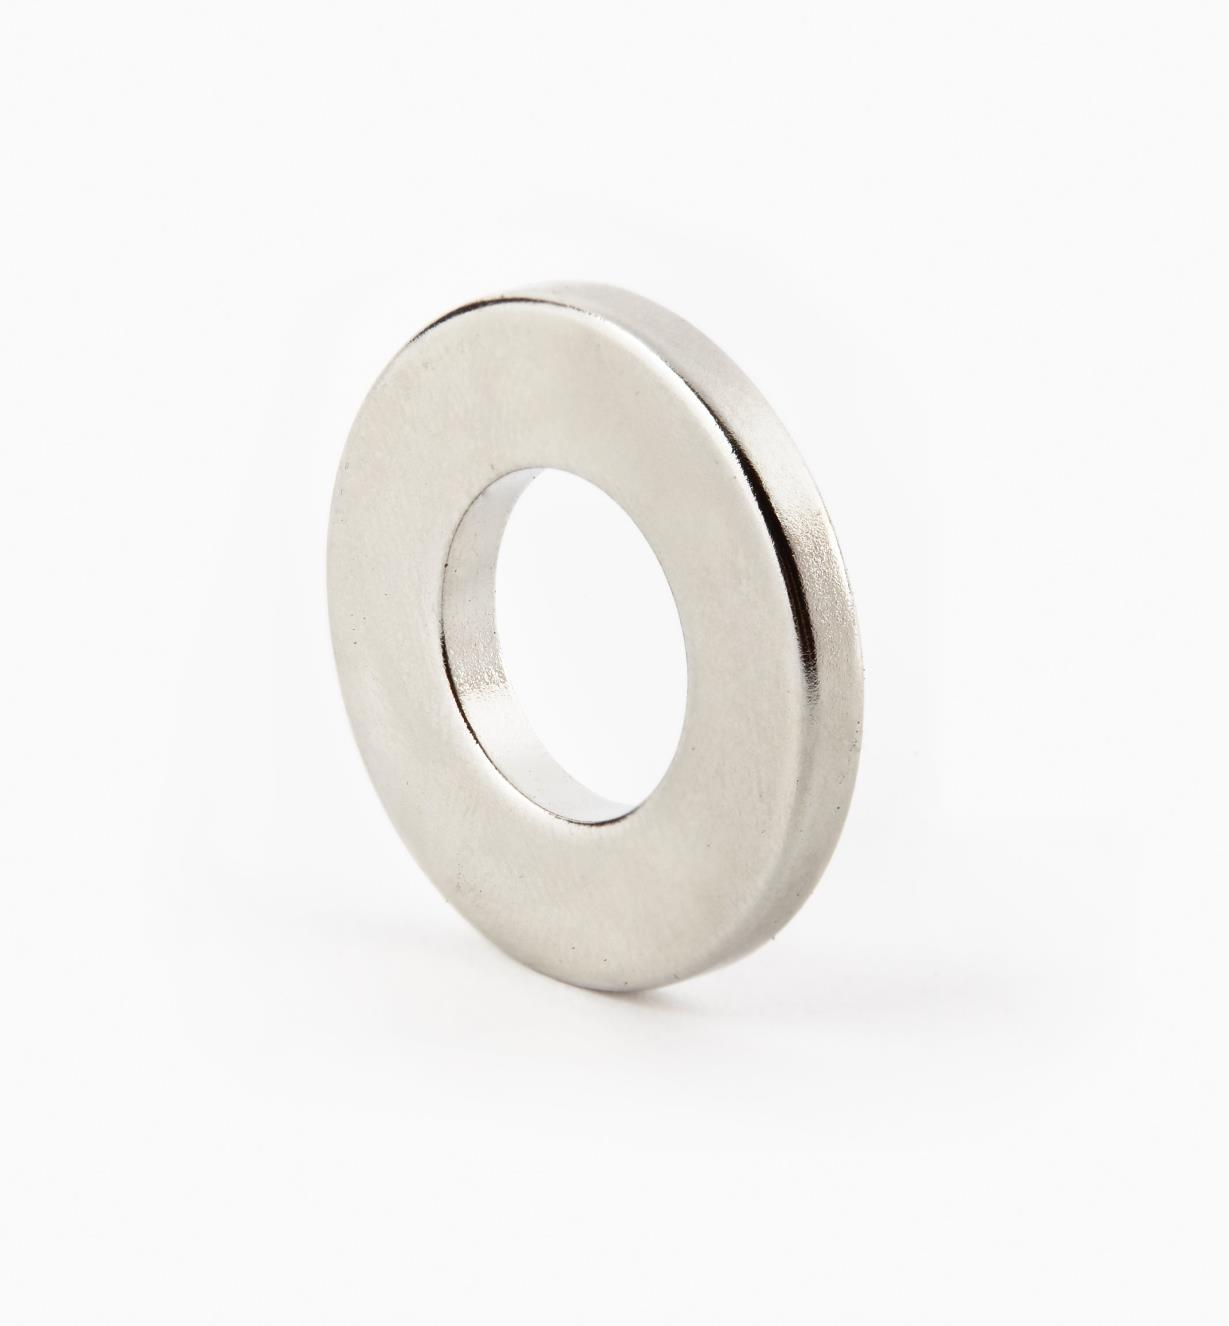 "99K3705 - 1"" x 1/8"" (1/2"") Ring Magnet"